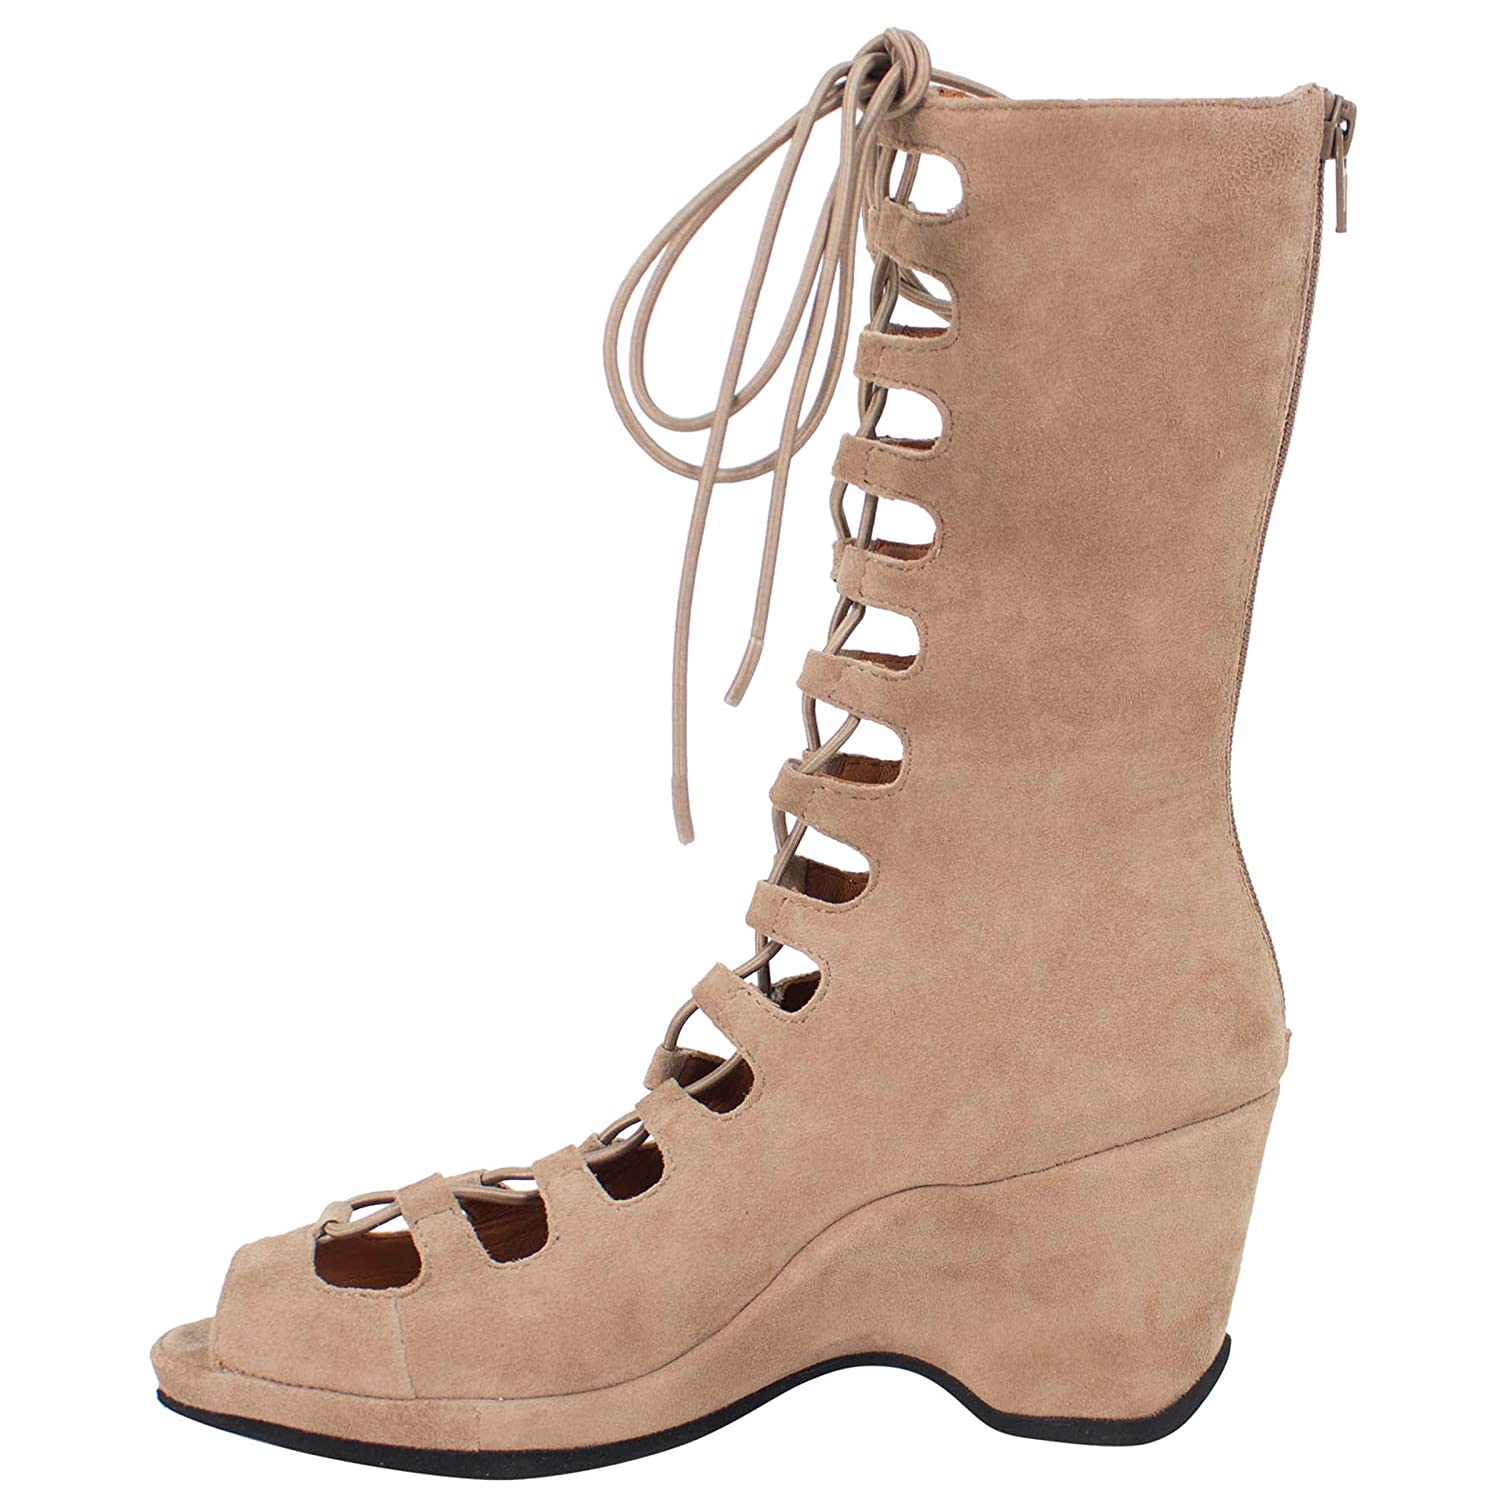 L'Amour des Pieds Women's M Othello B075X4Q9TK 6.5 M Women's US|Taupe Kid Sued 52f8c8